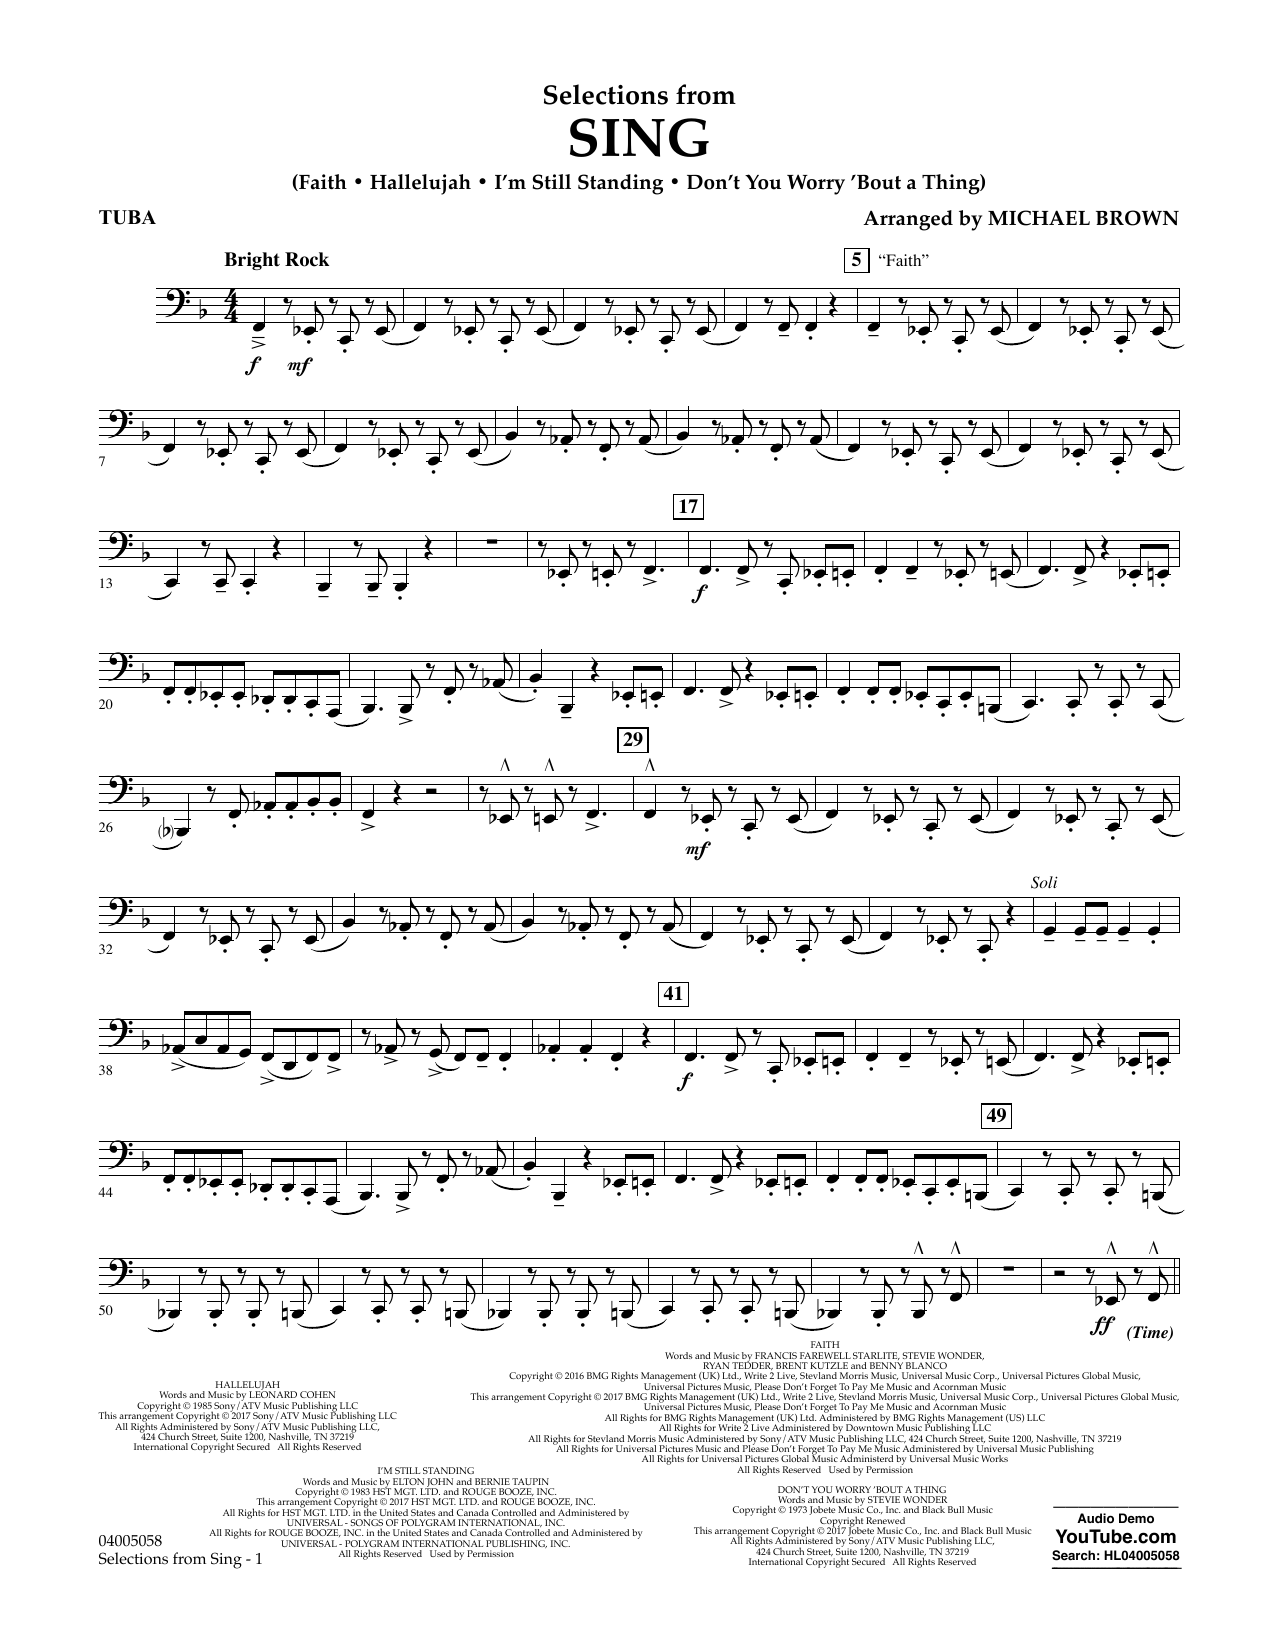 Selections from Sing - Tuba Sheet Music